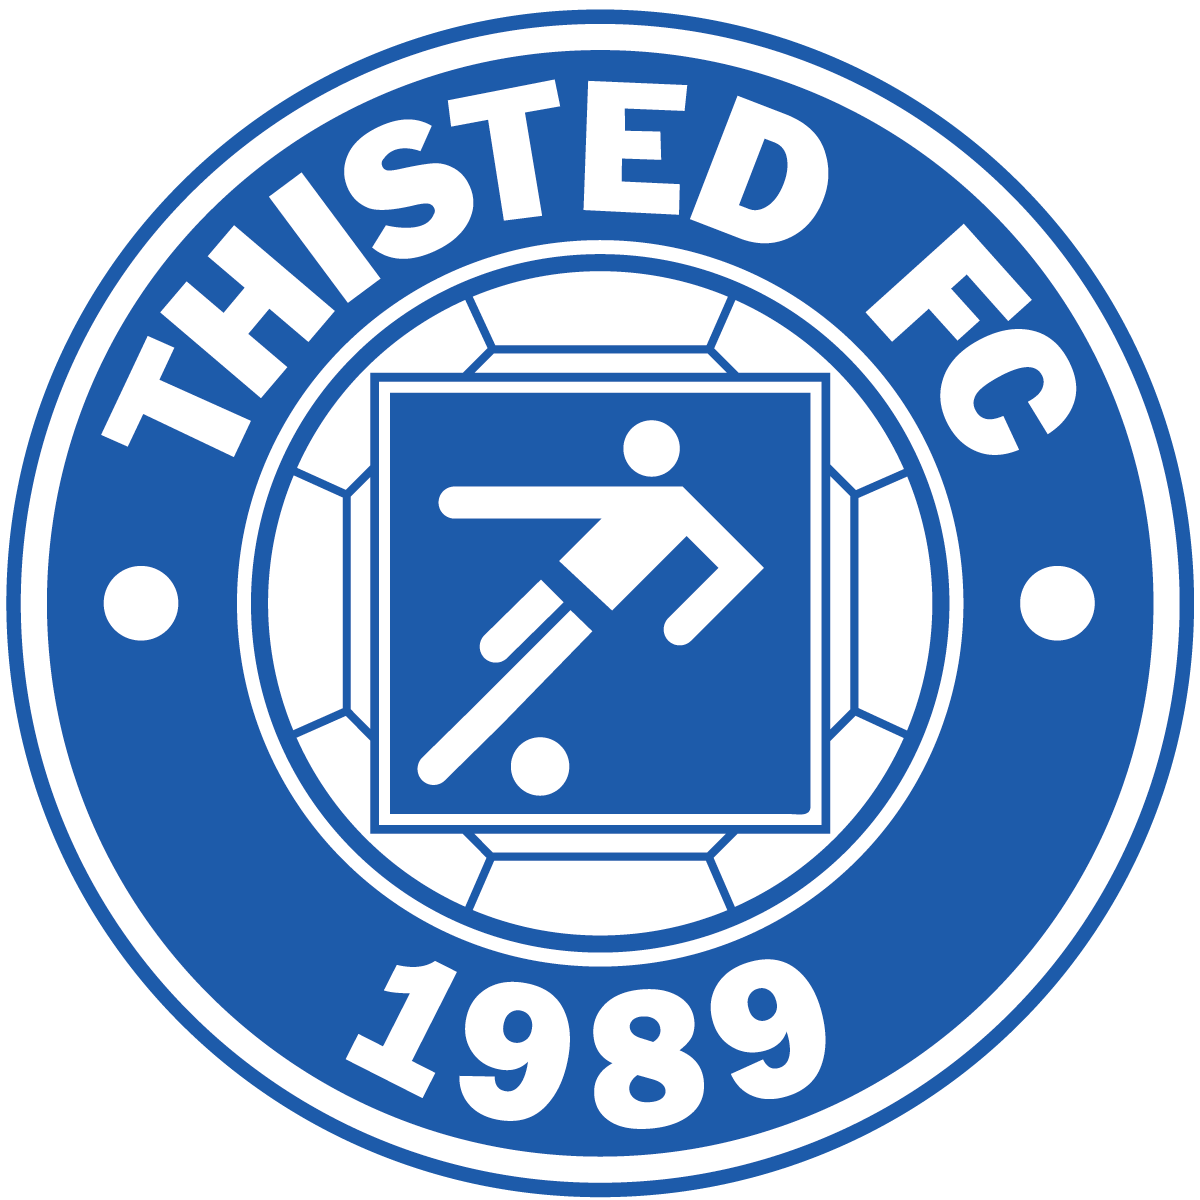 Thistedfc.dk